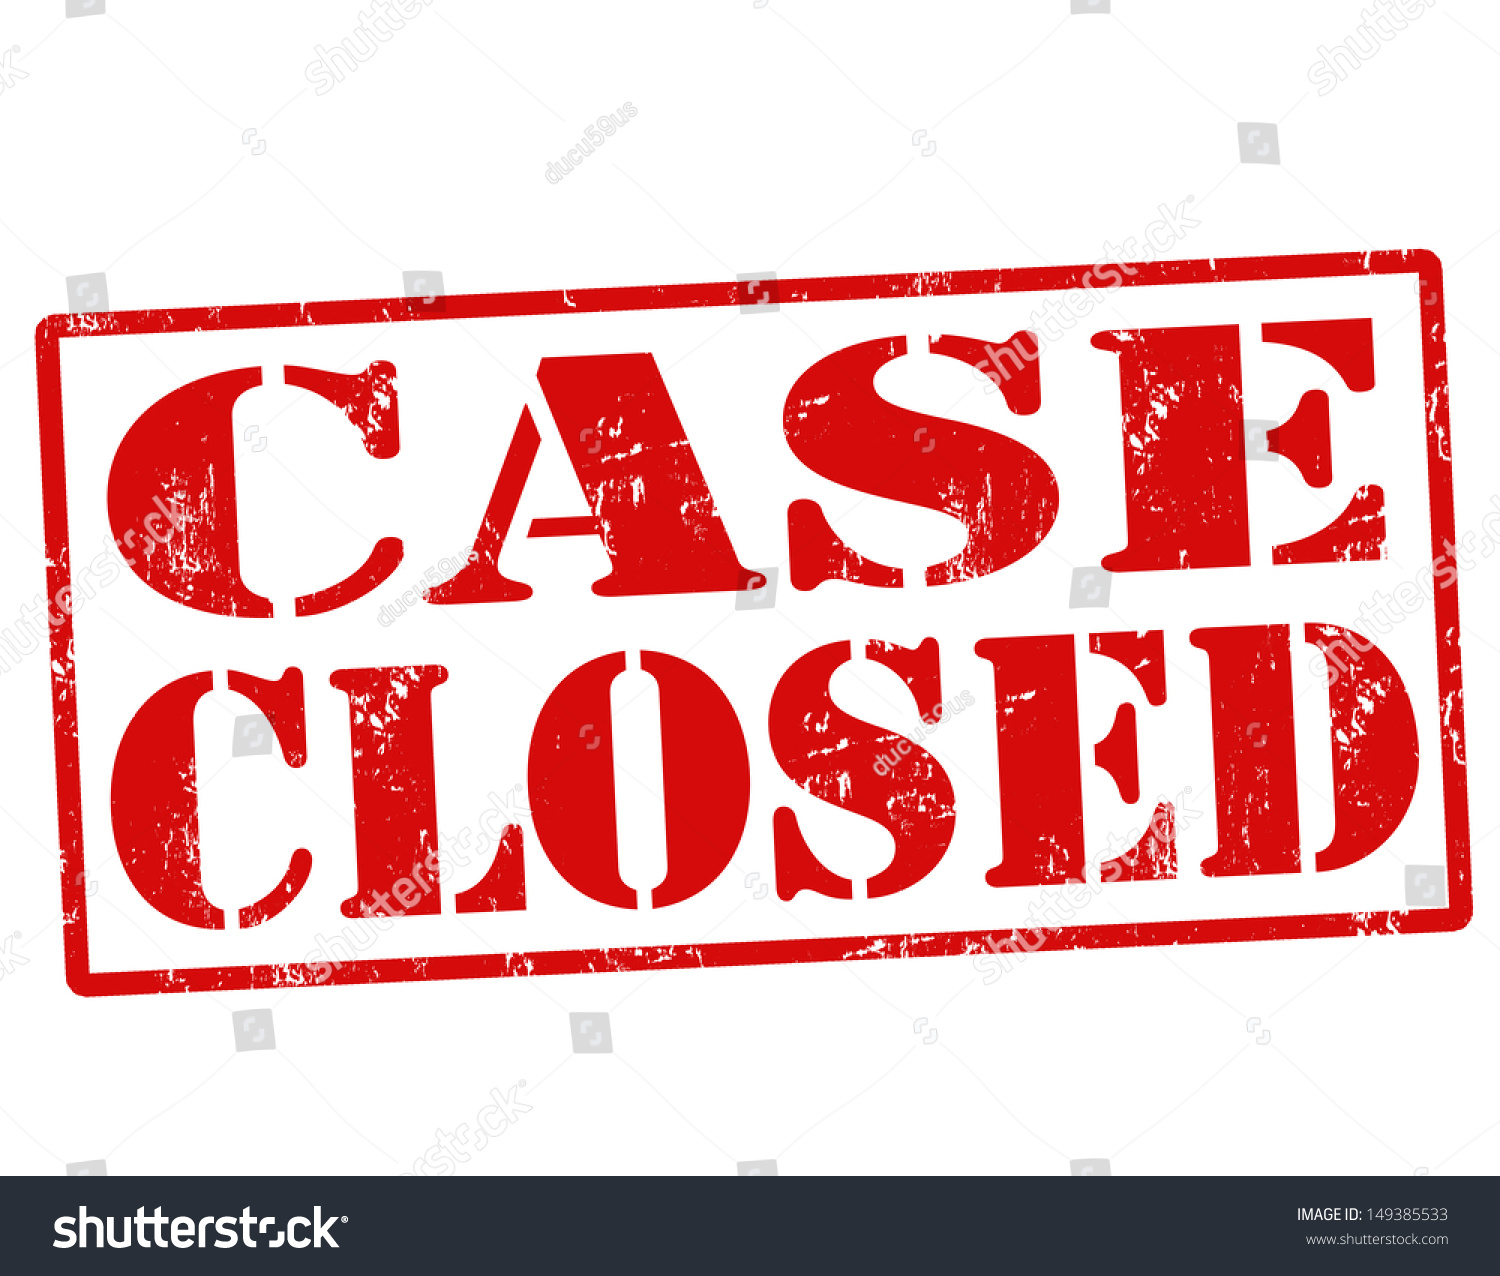 Case Closed Red Grunge Rubber Stamp Stock Vector 149385533